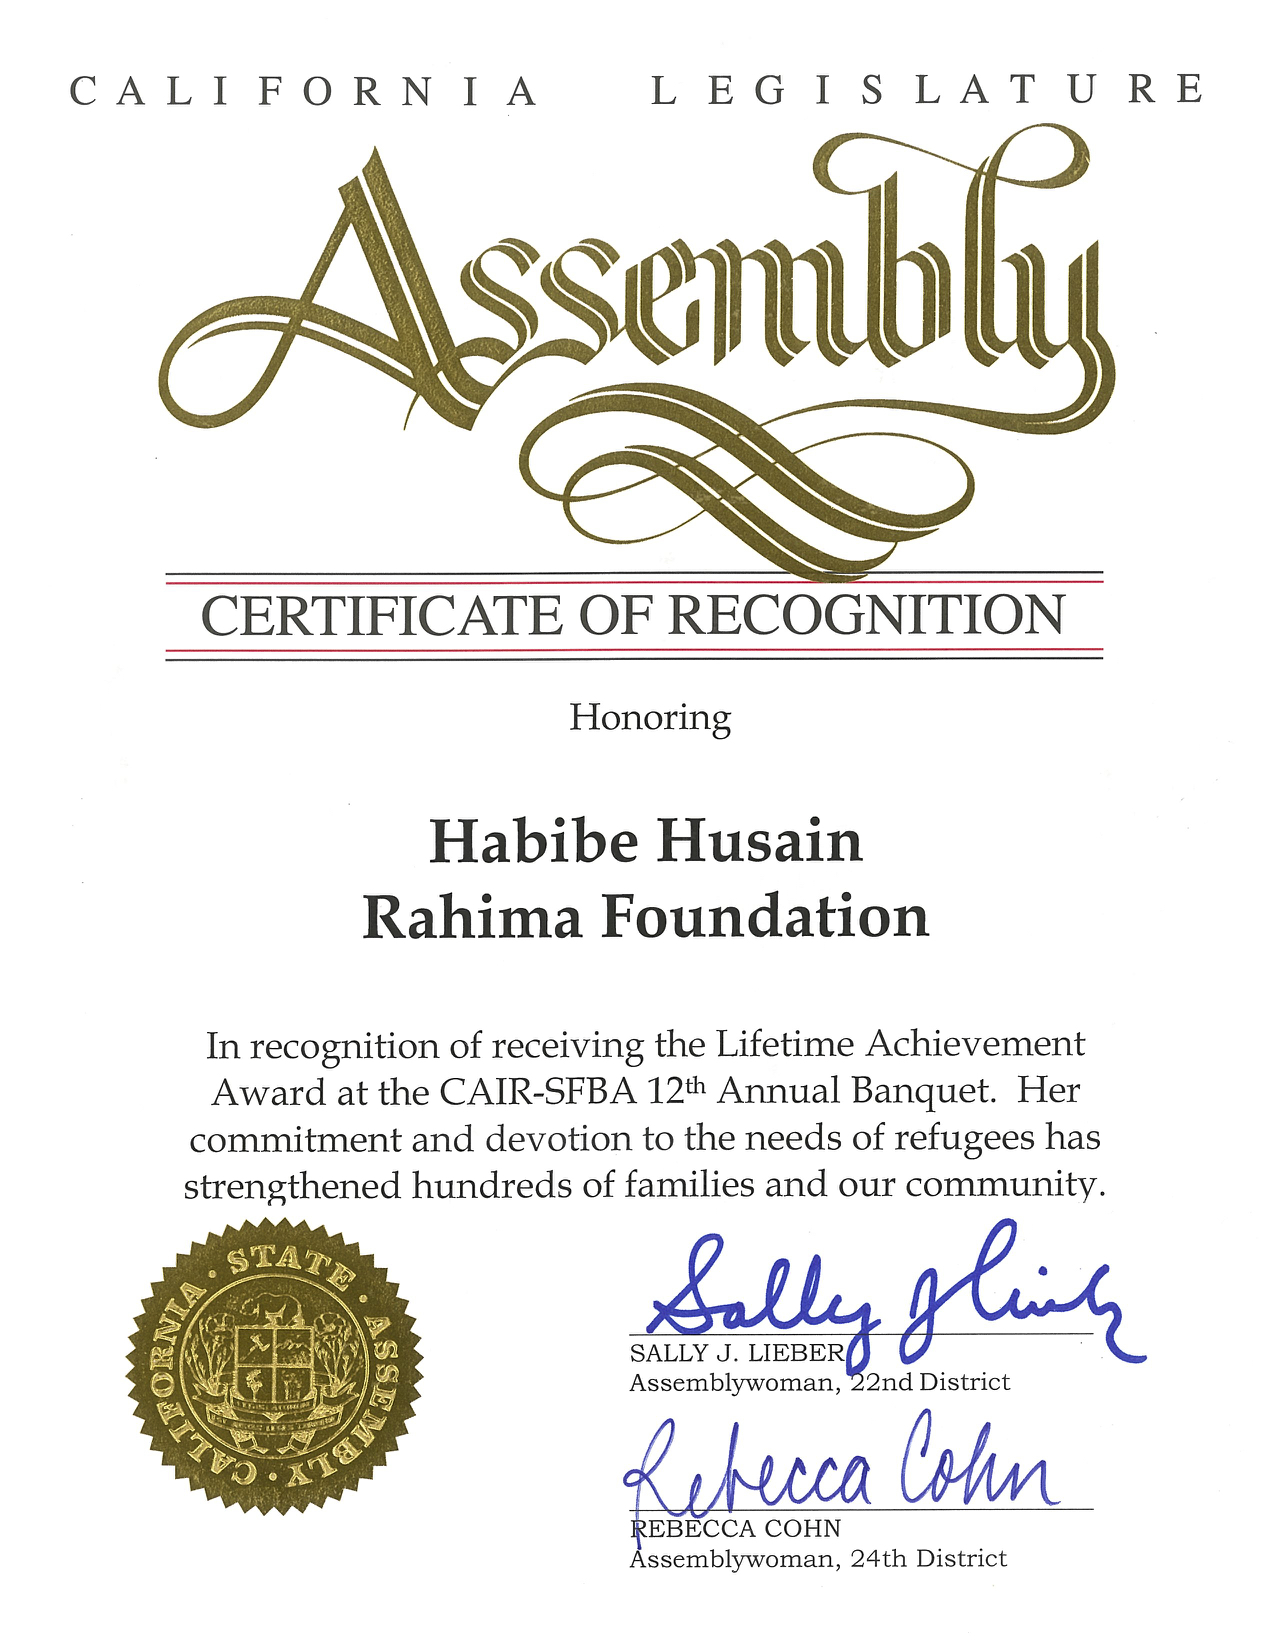 Certificate from Assemblywoman Rebecca Cohn and Sally Lieber on behalf of California Legislature Assembly